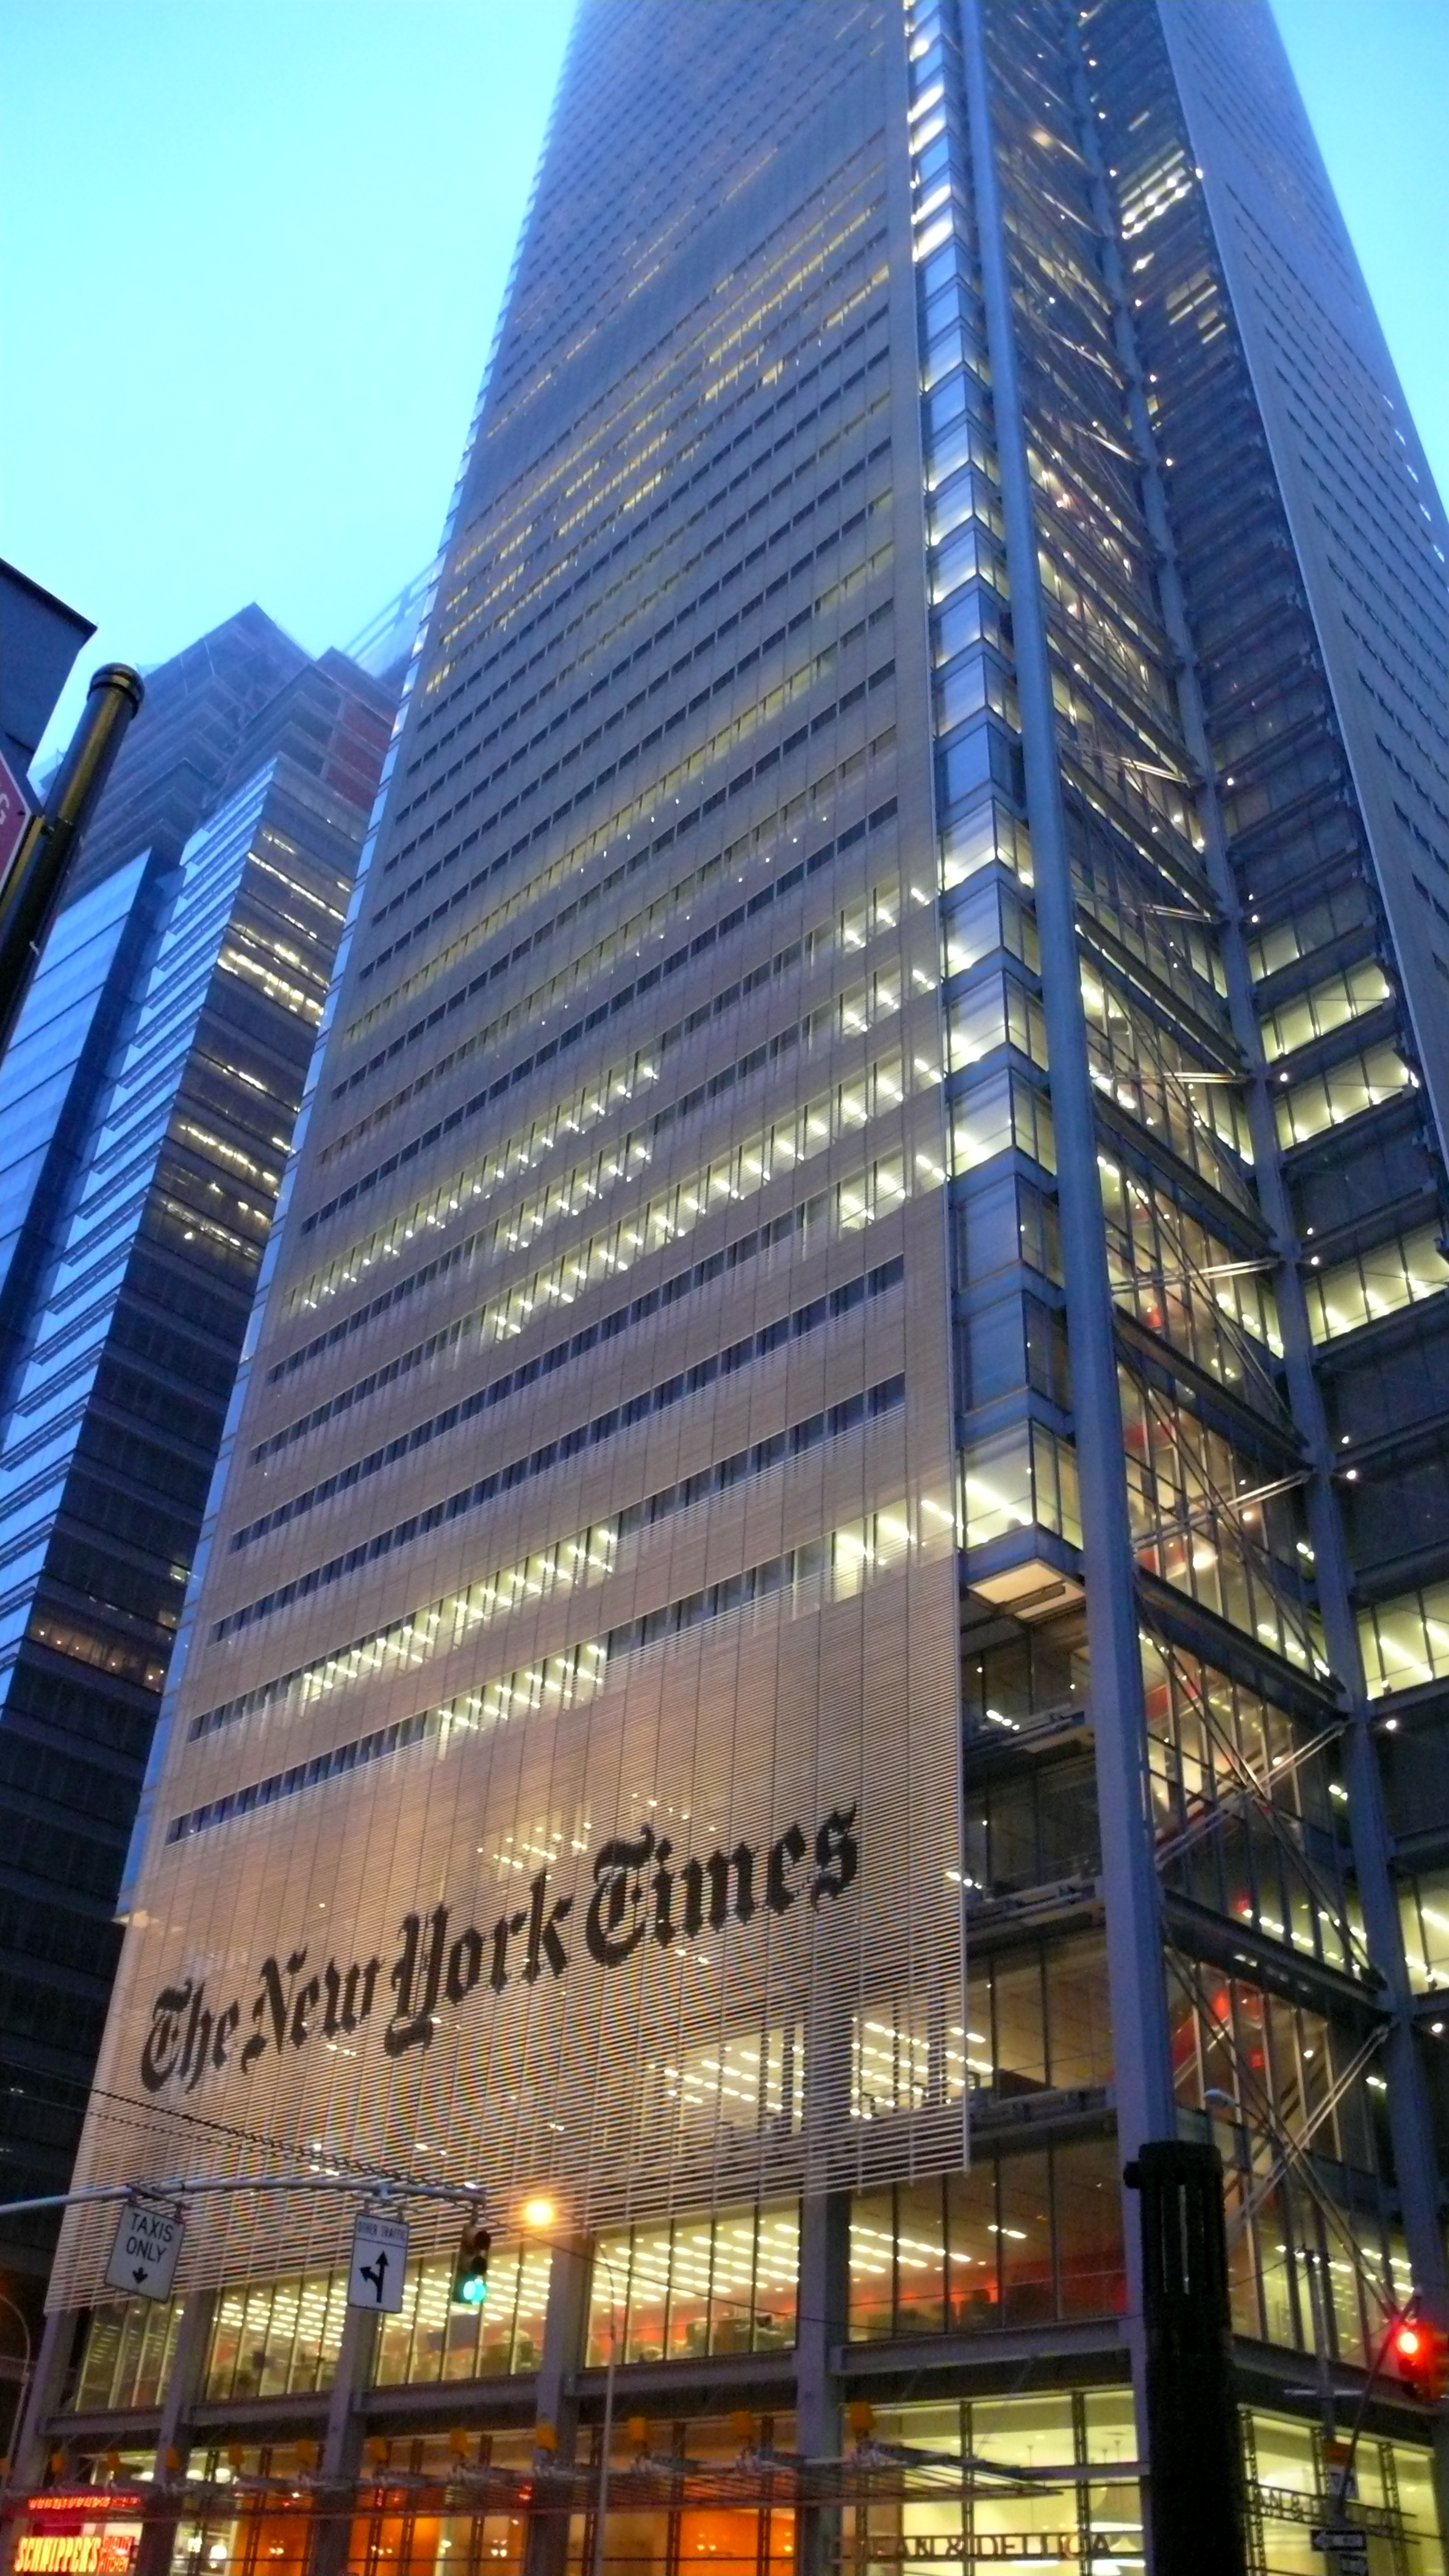 New York Times Mexico City Travel Guide